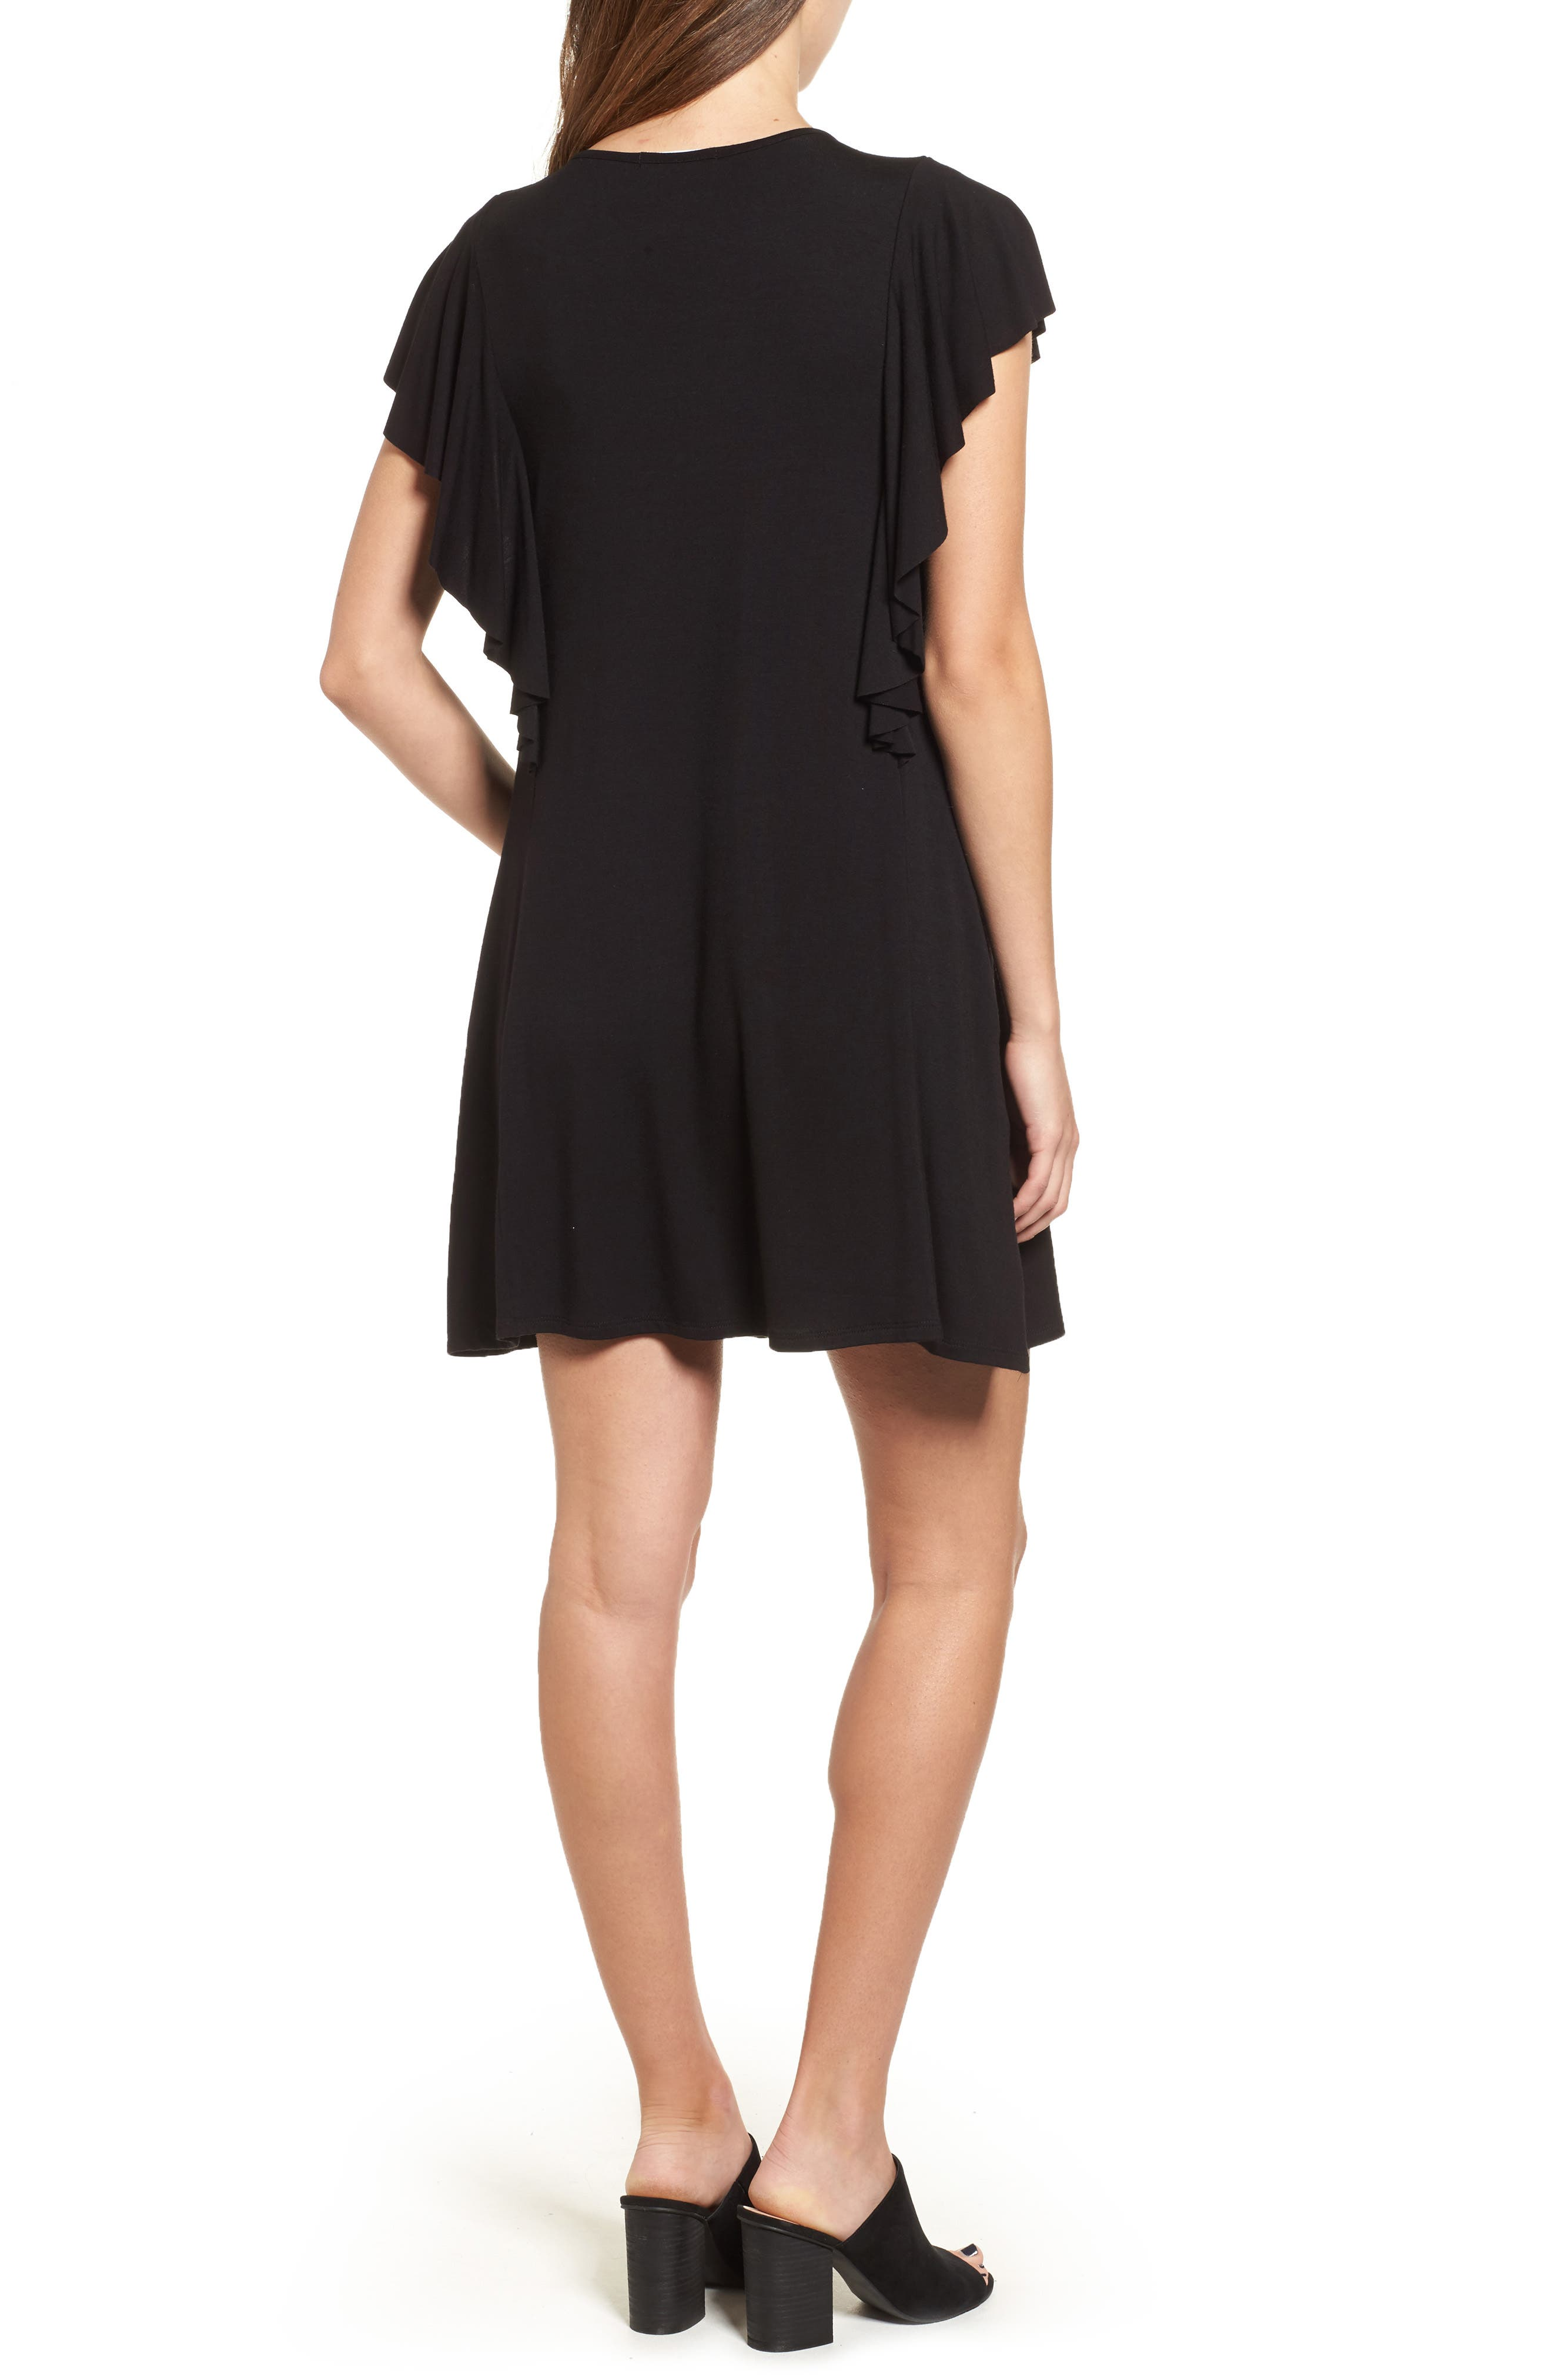 SOCIALITE, Ruffle Sleeve T-Shirt Dress, Alternate thumbnail 2, color, 001